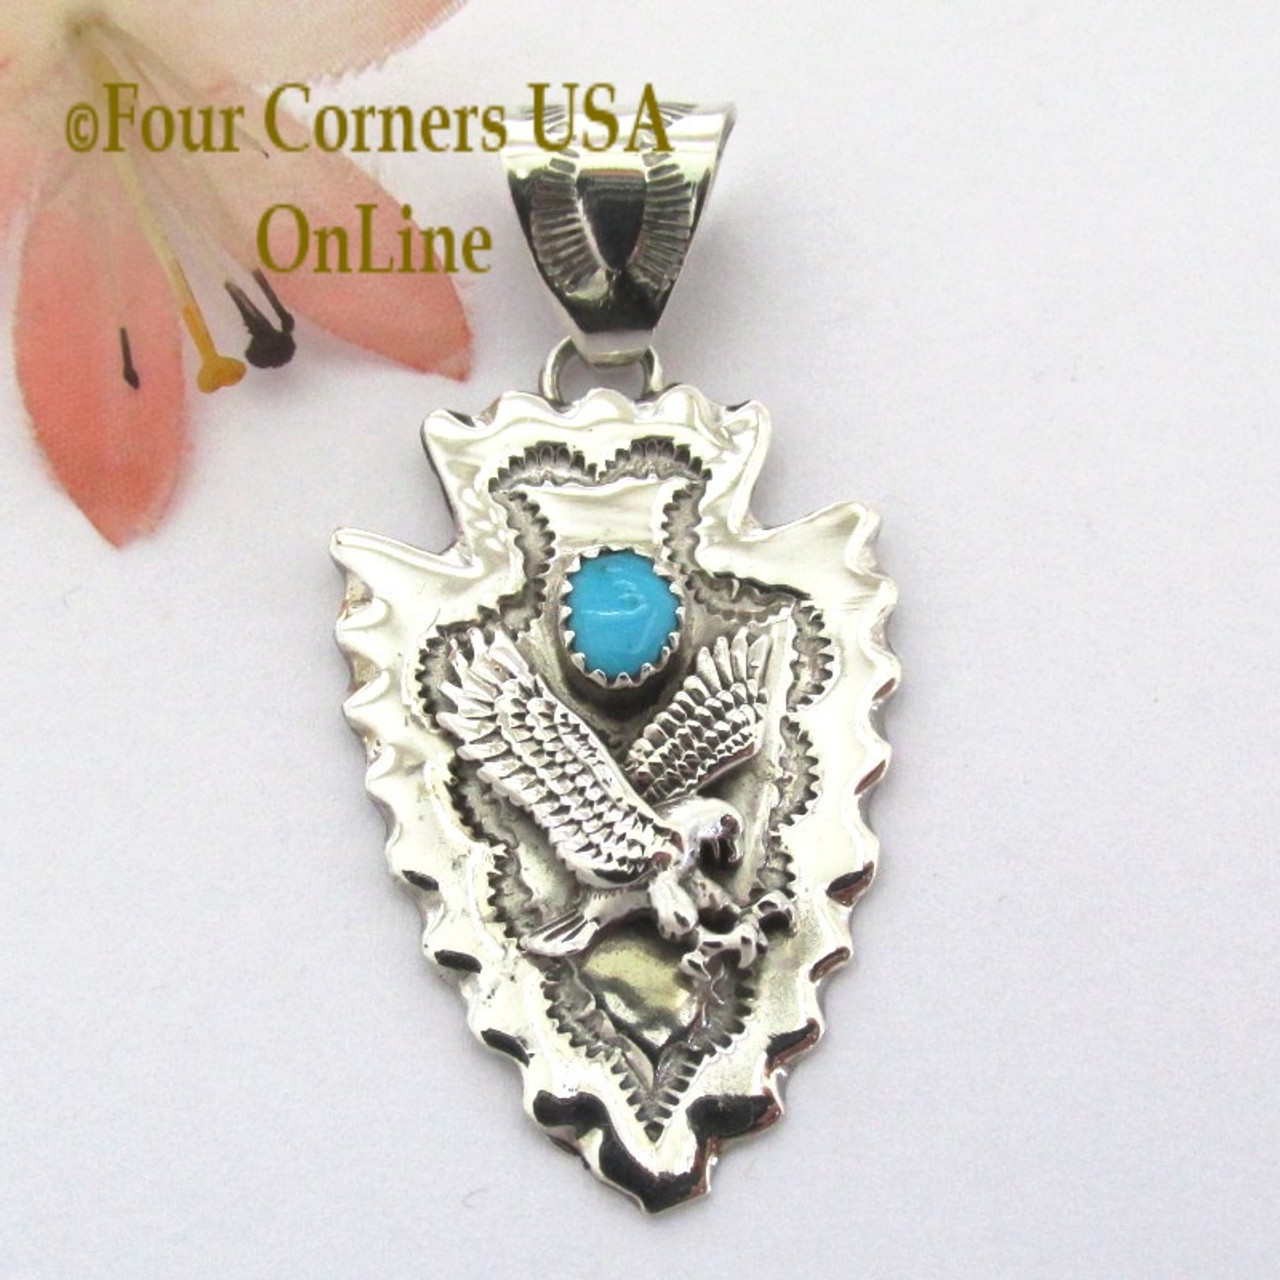 Eagle arrowhead pendant nap 1480 navajo silver jewelry four arrowhead eagle turquoise pendant navajo silversmith alice johnson nap 1480 four corners usa online native aloadofball Choice Image